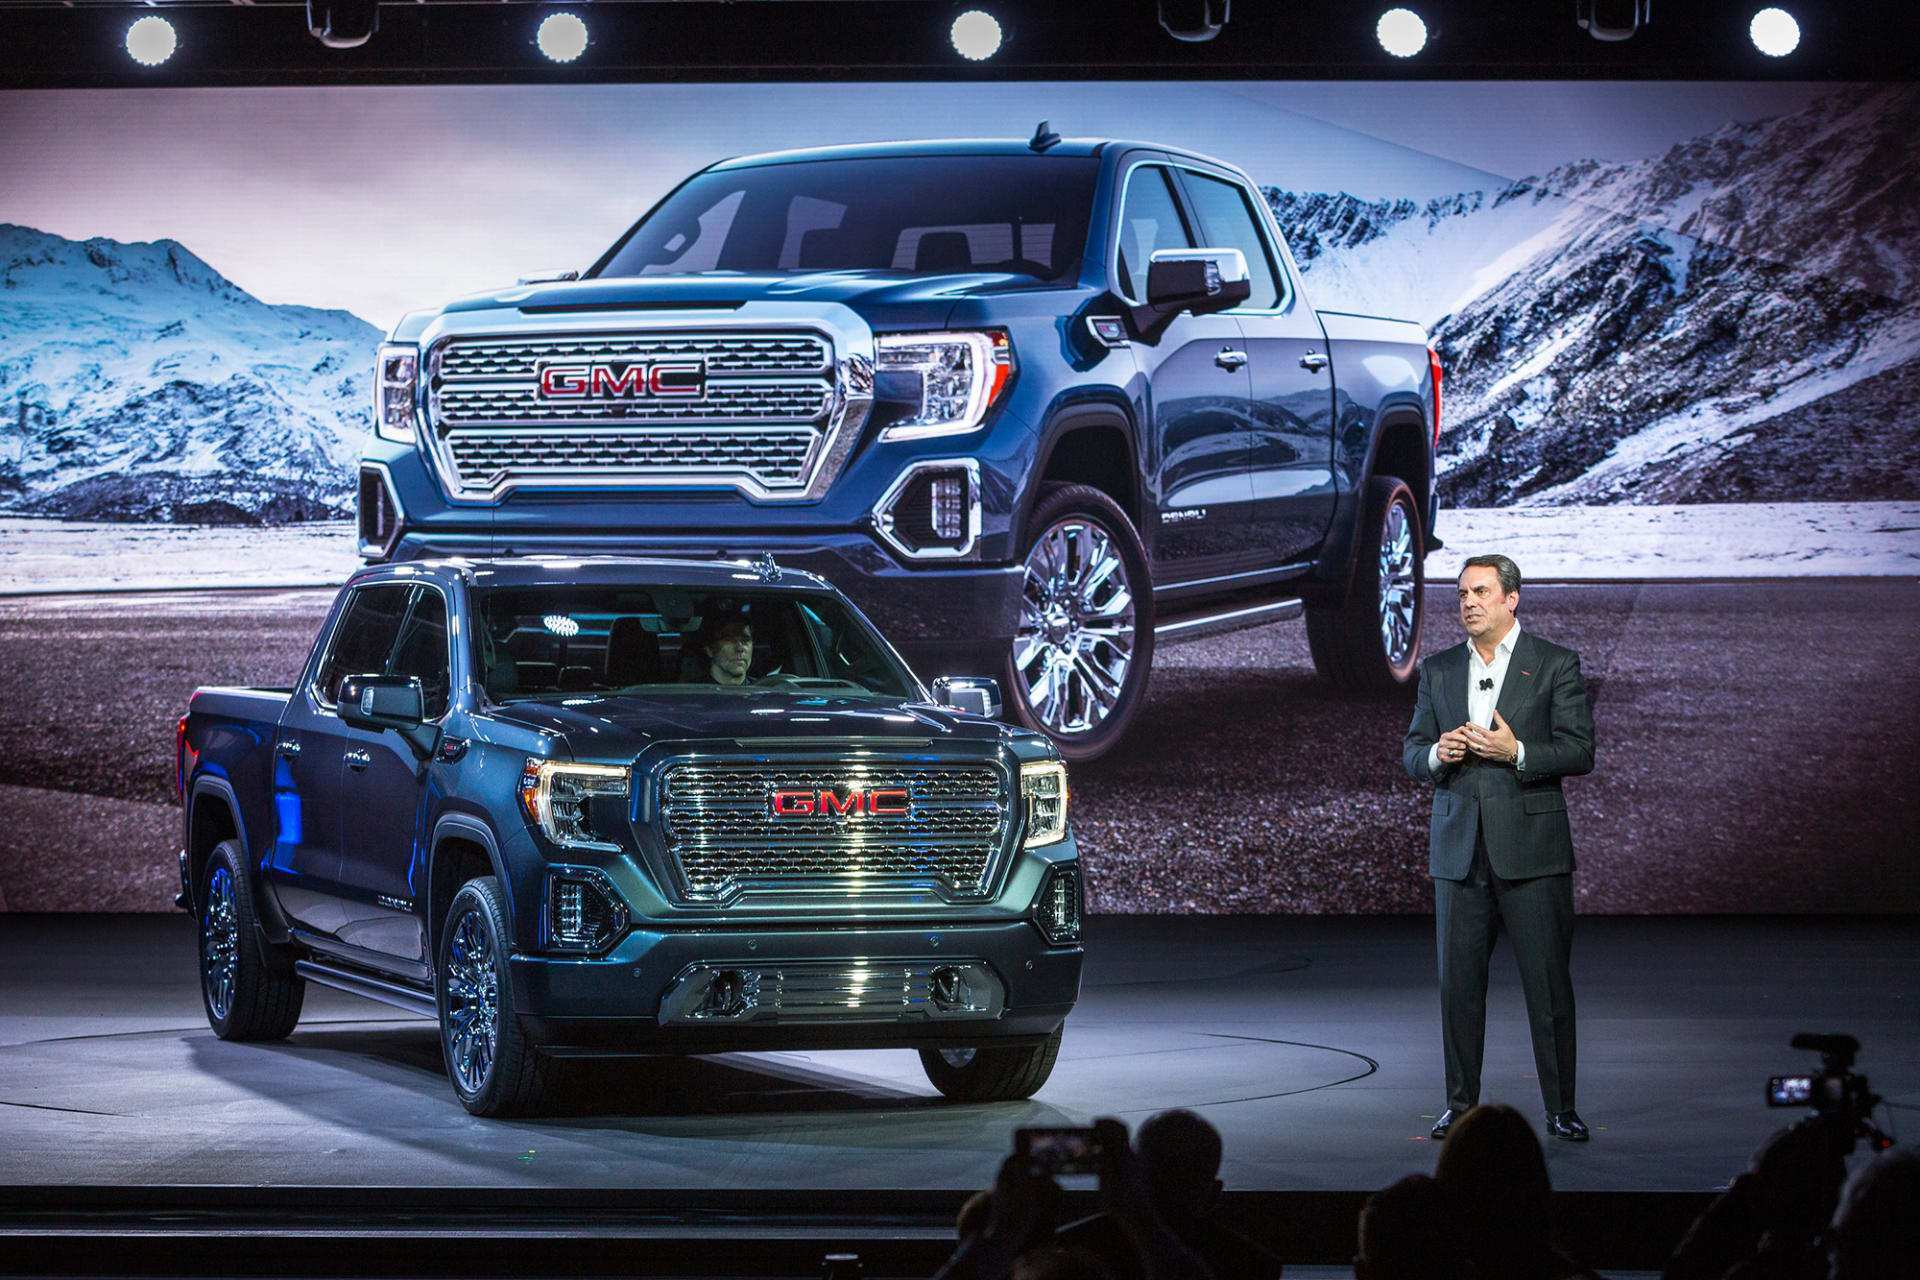 57 Concept of New Release Of 2019 Gmc Sierra Redesign Release for New Release Of 2019 Gmc Sierra Redesign